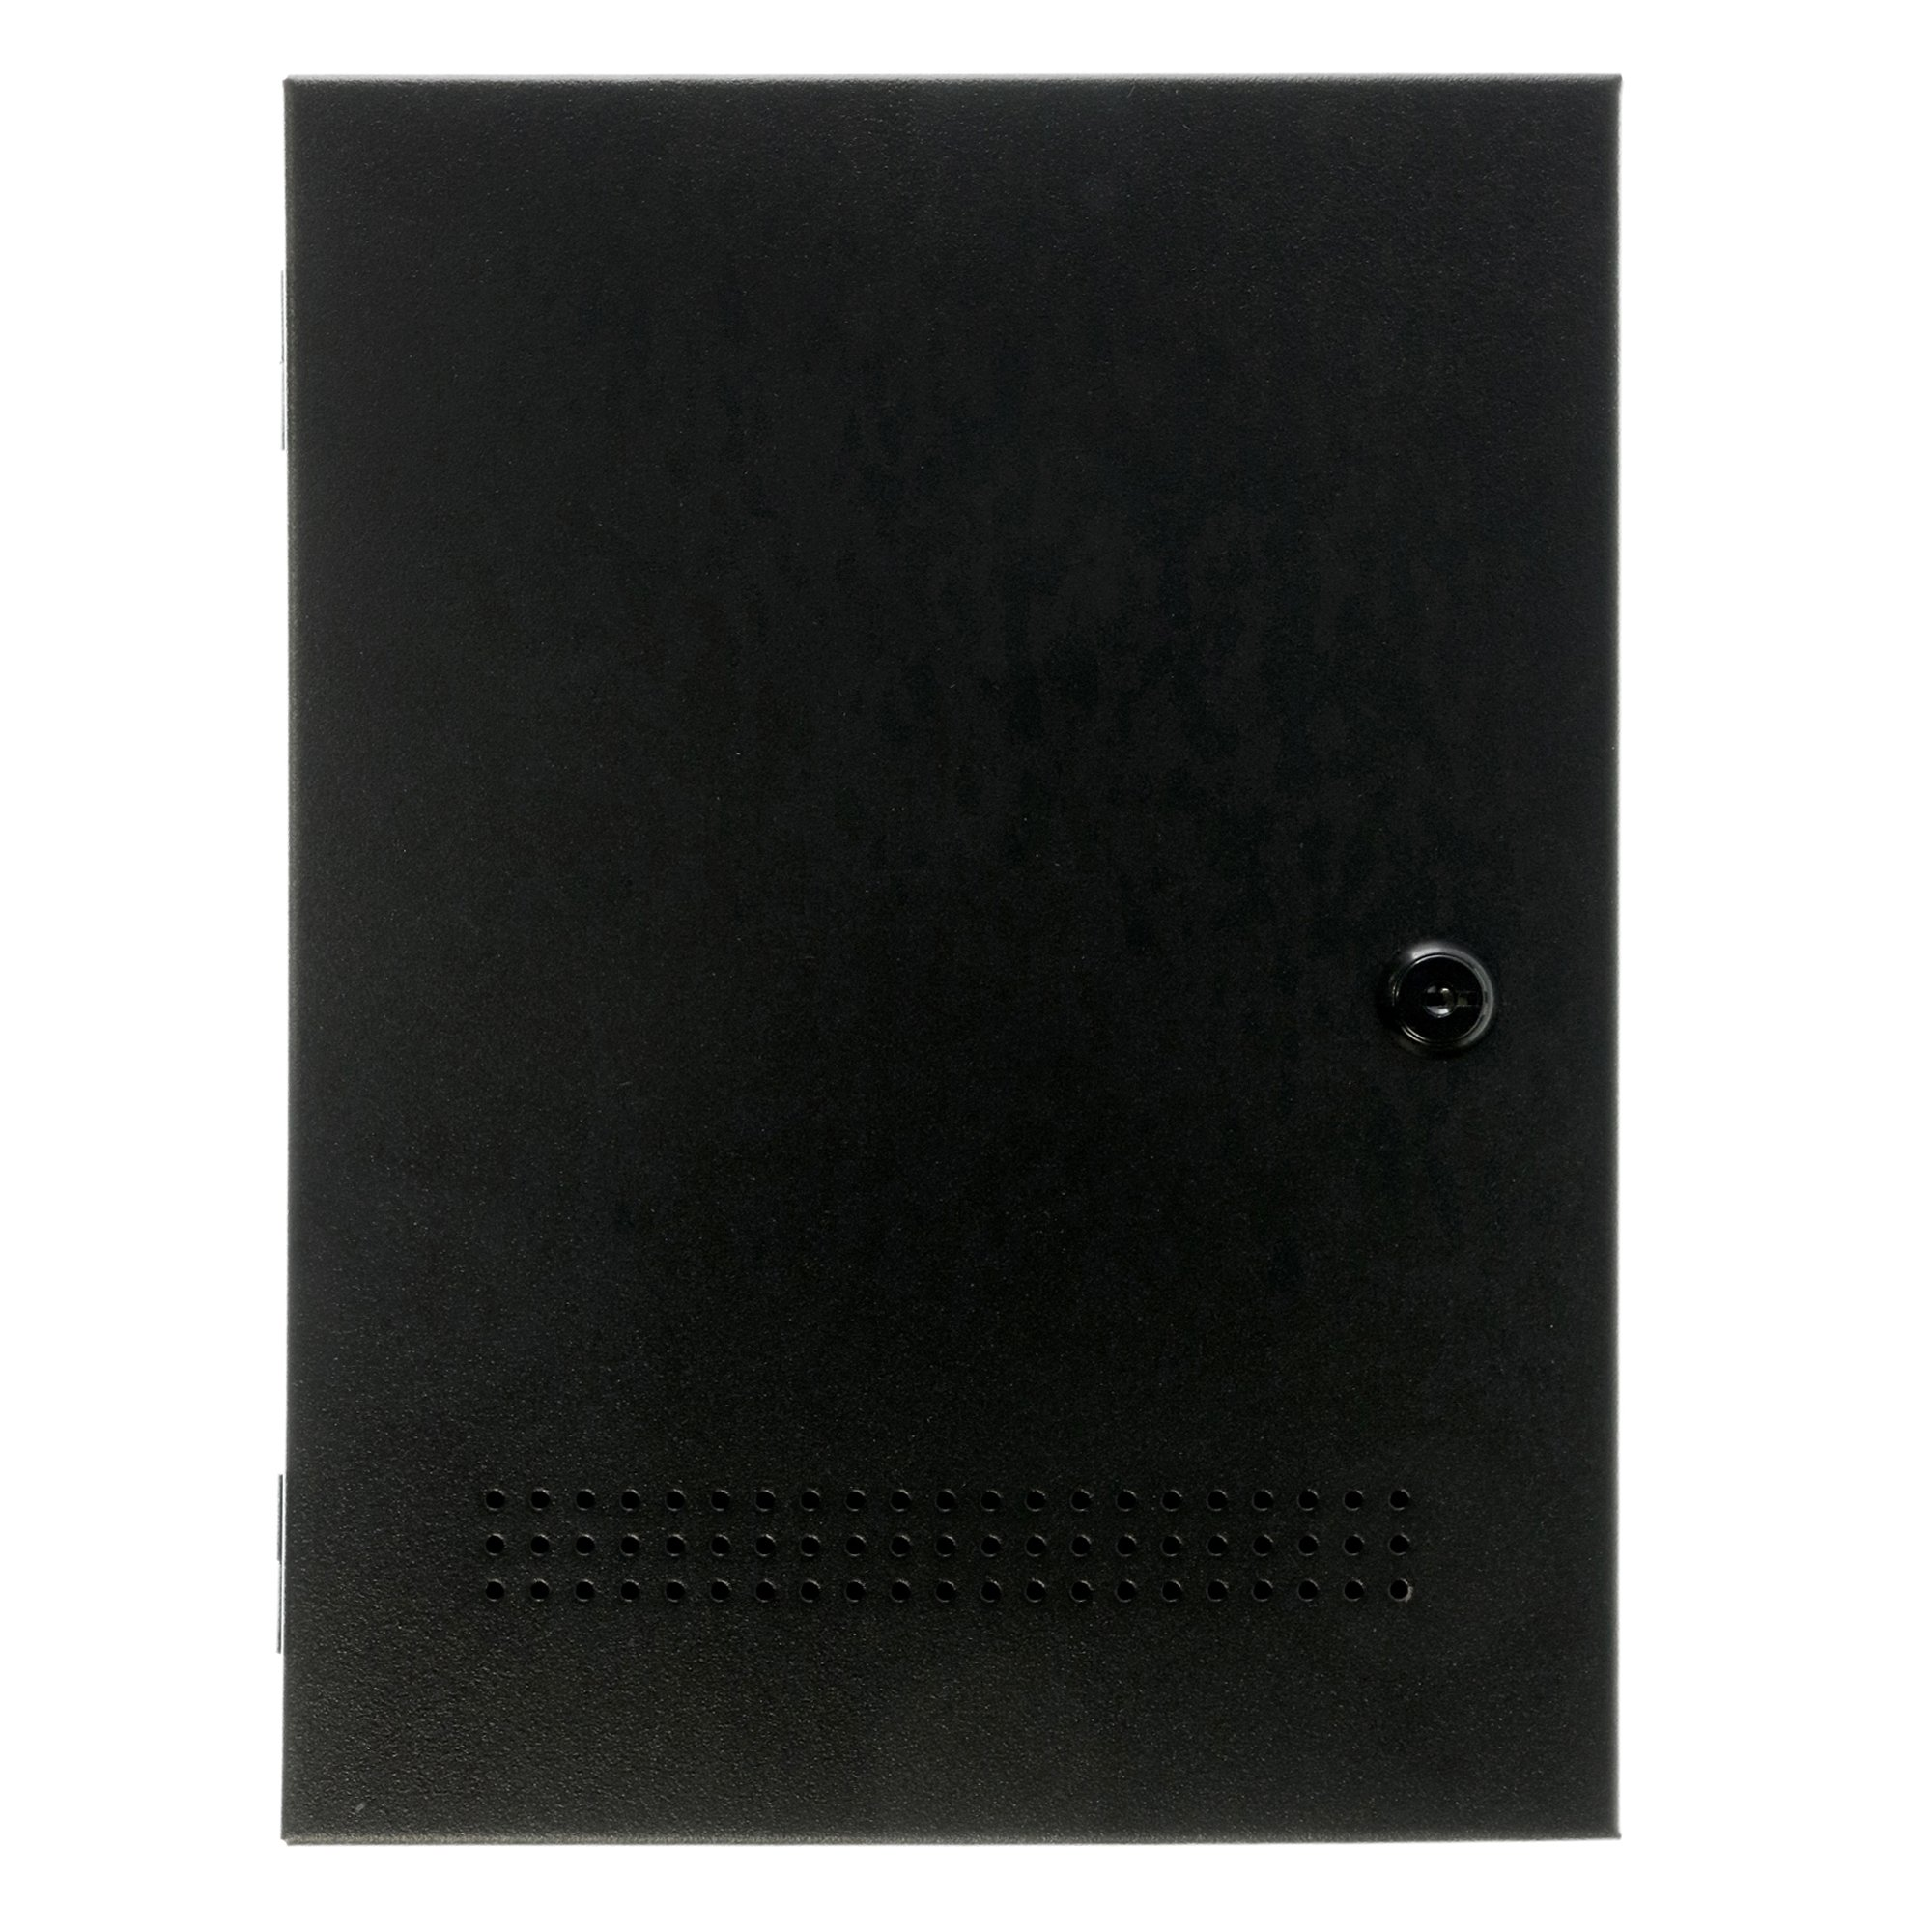 Notifier BB-XP Surface Mount Cabinet, Indoor, Mounting Plate, Black